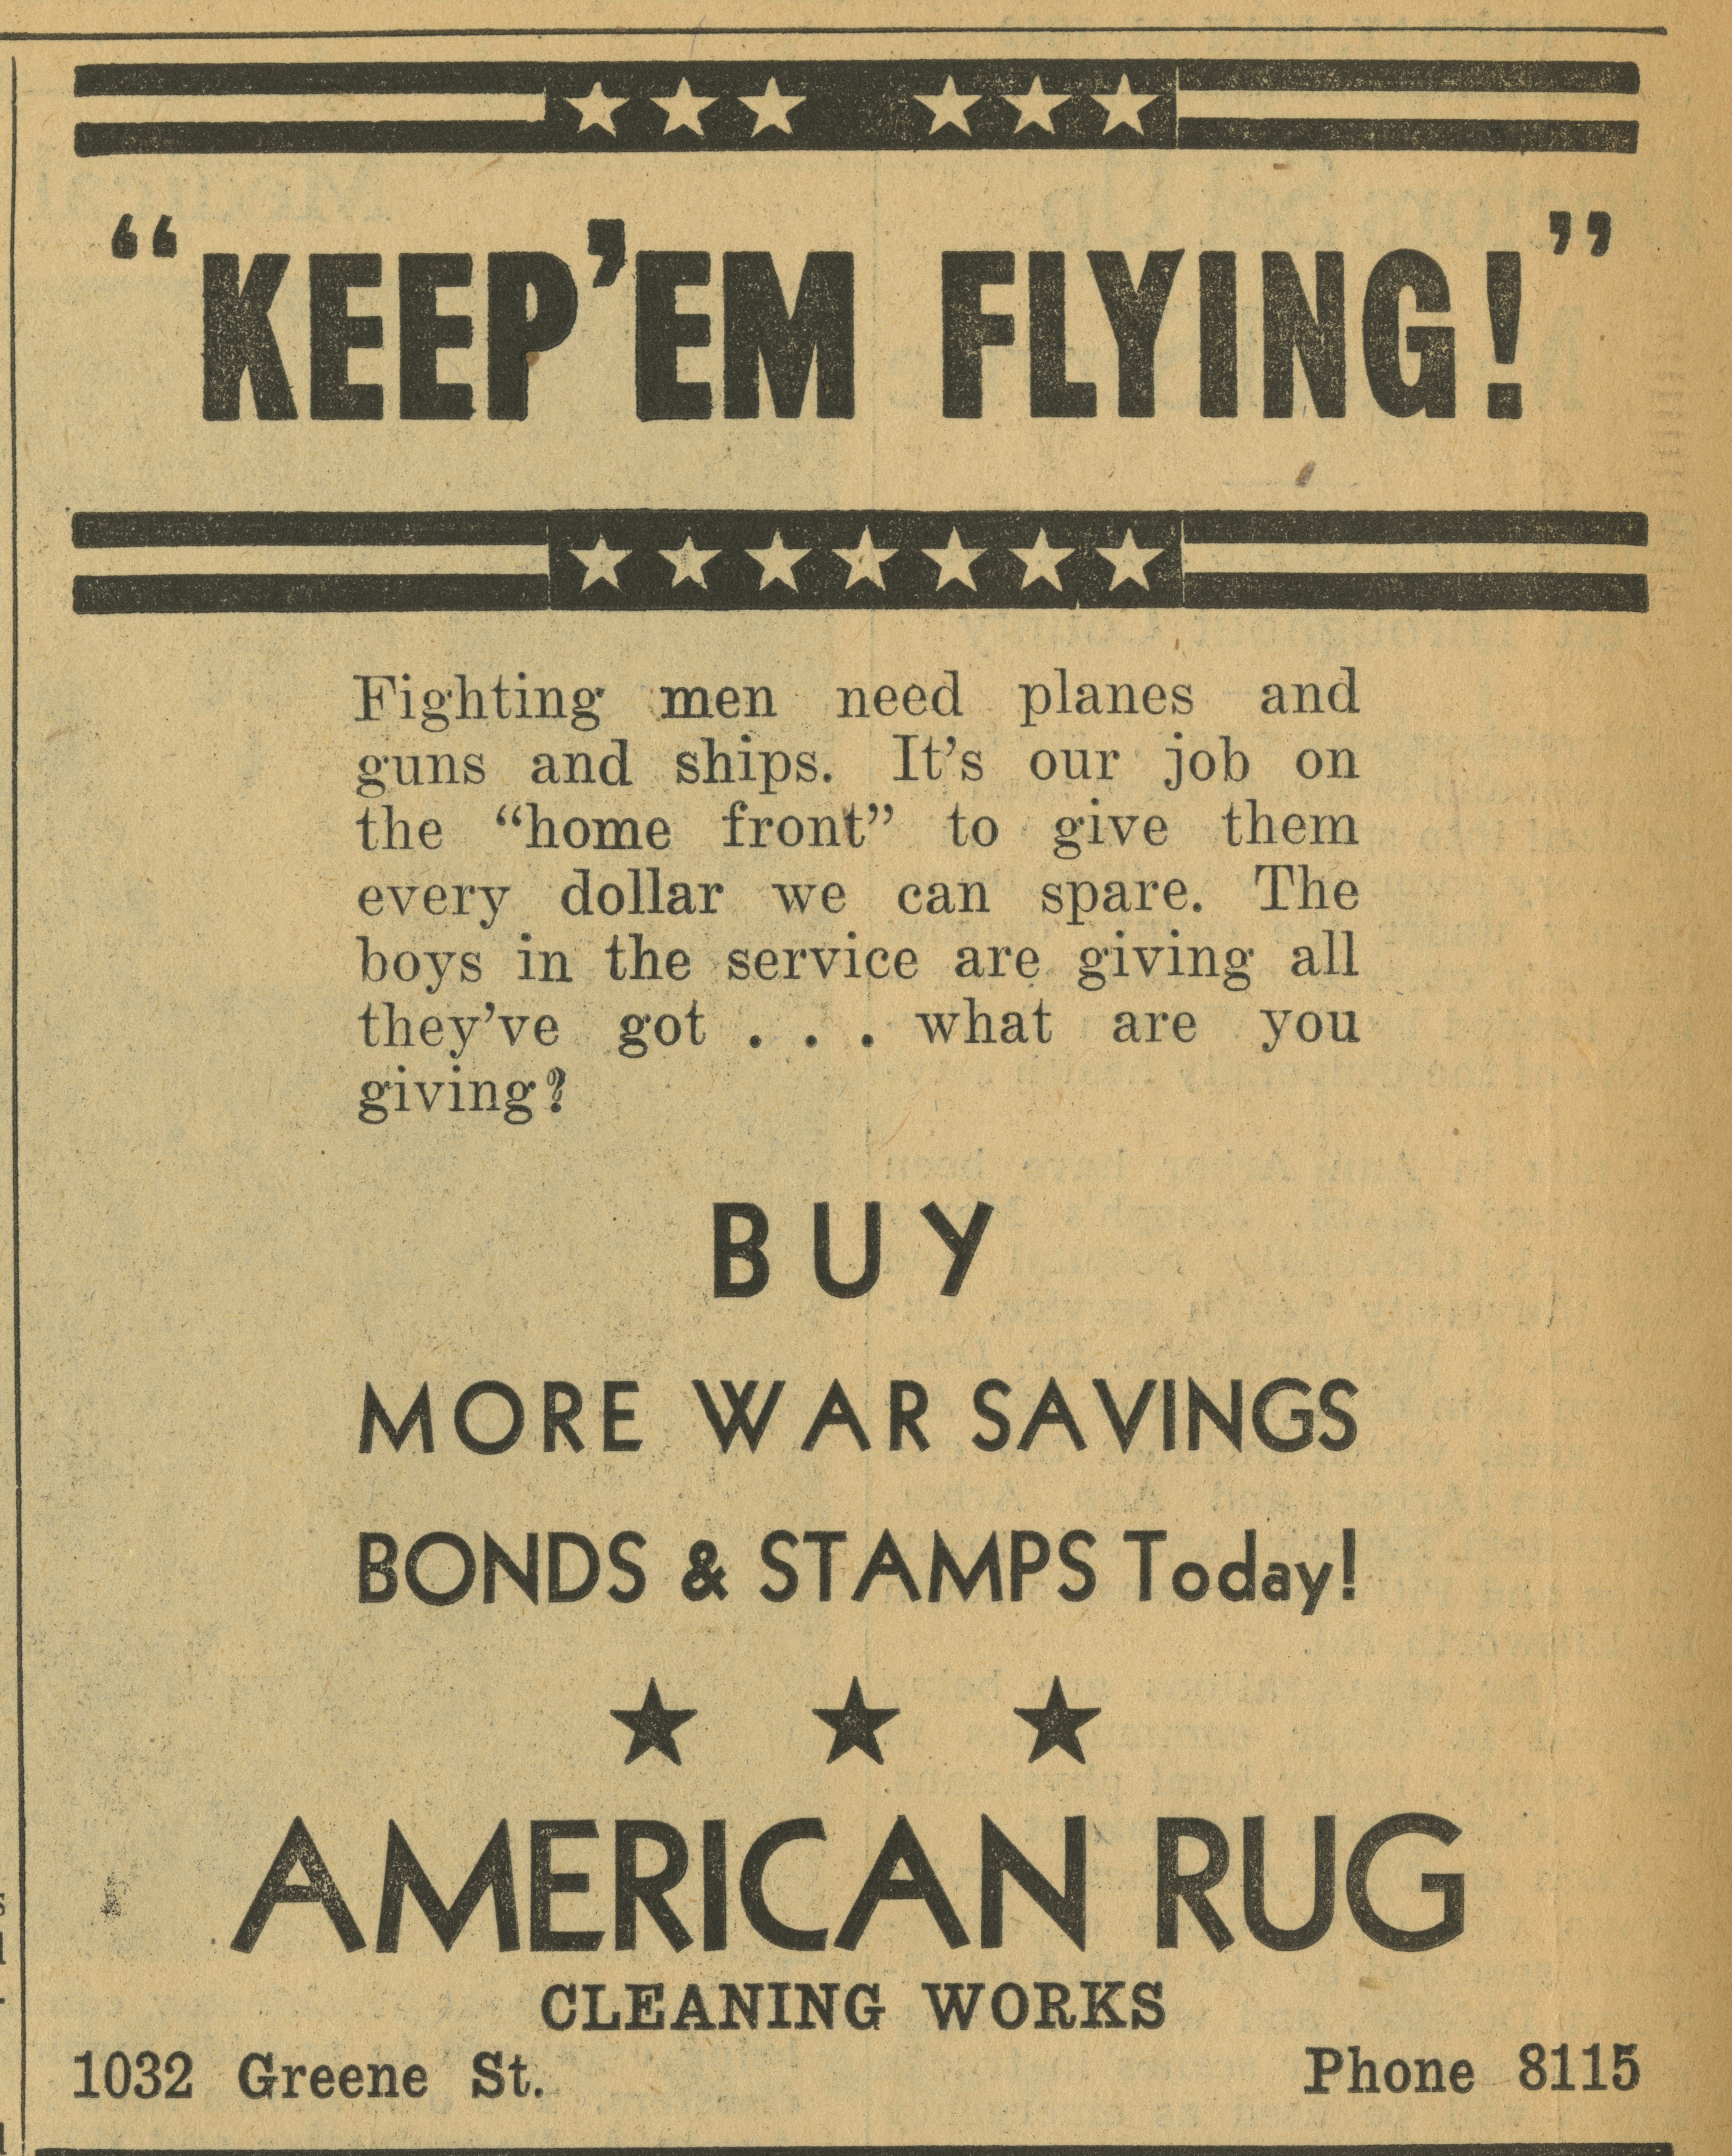 American Rug Cleaning Works [advertisement] image